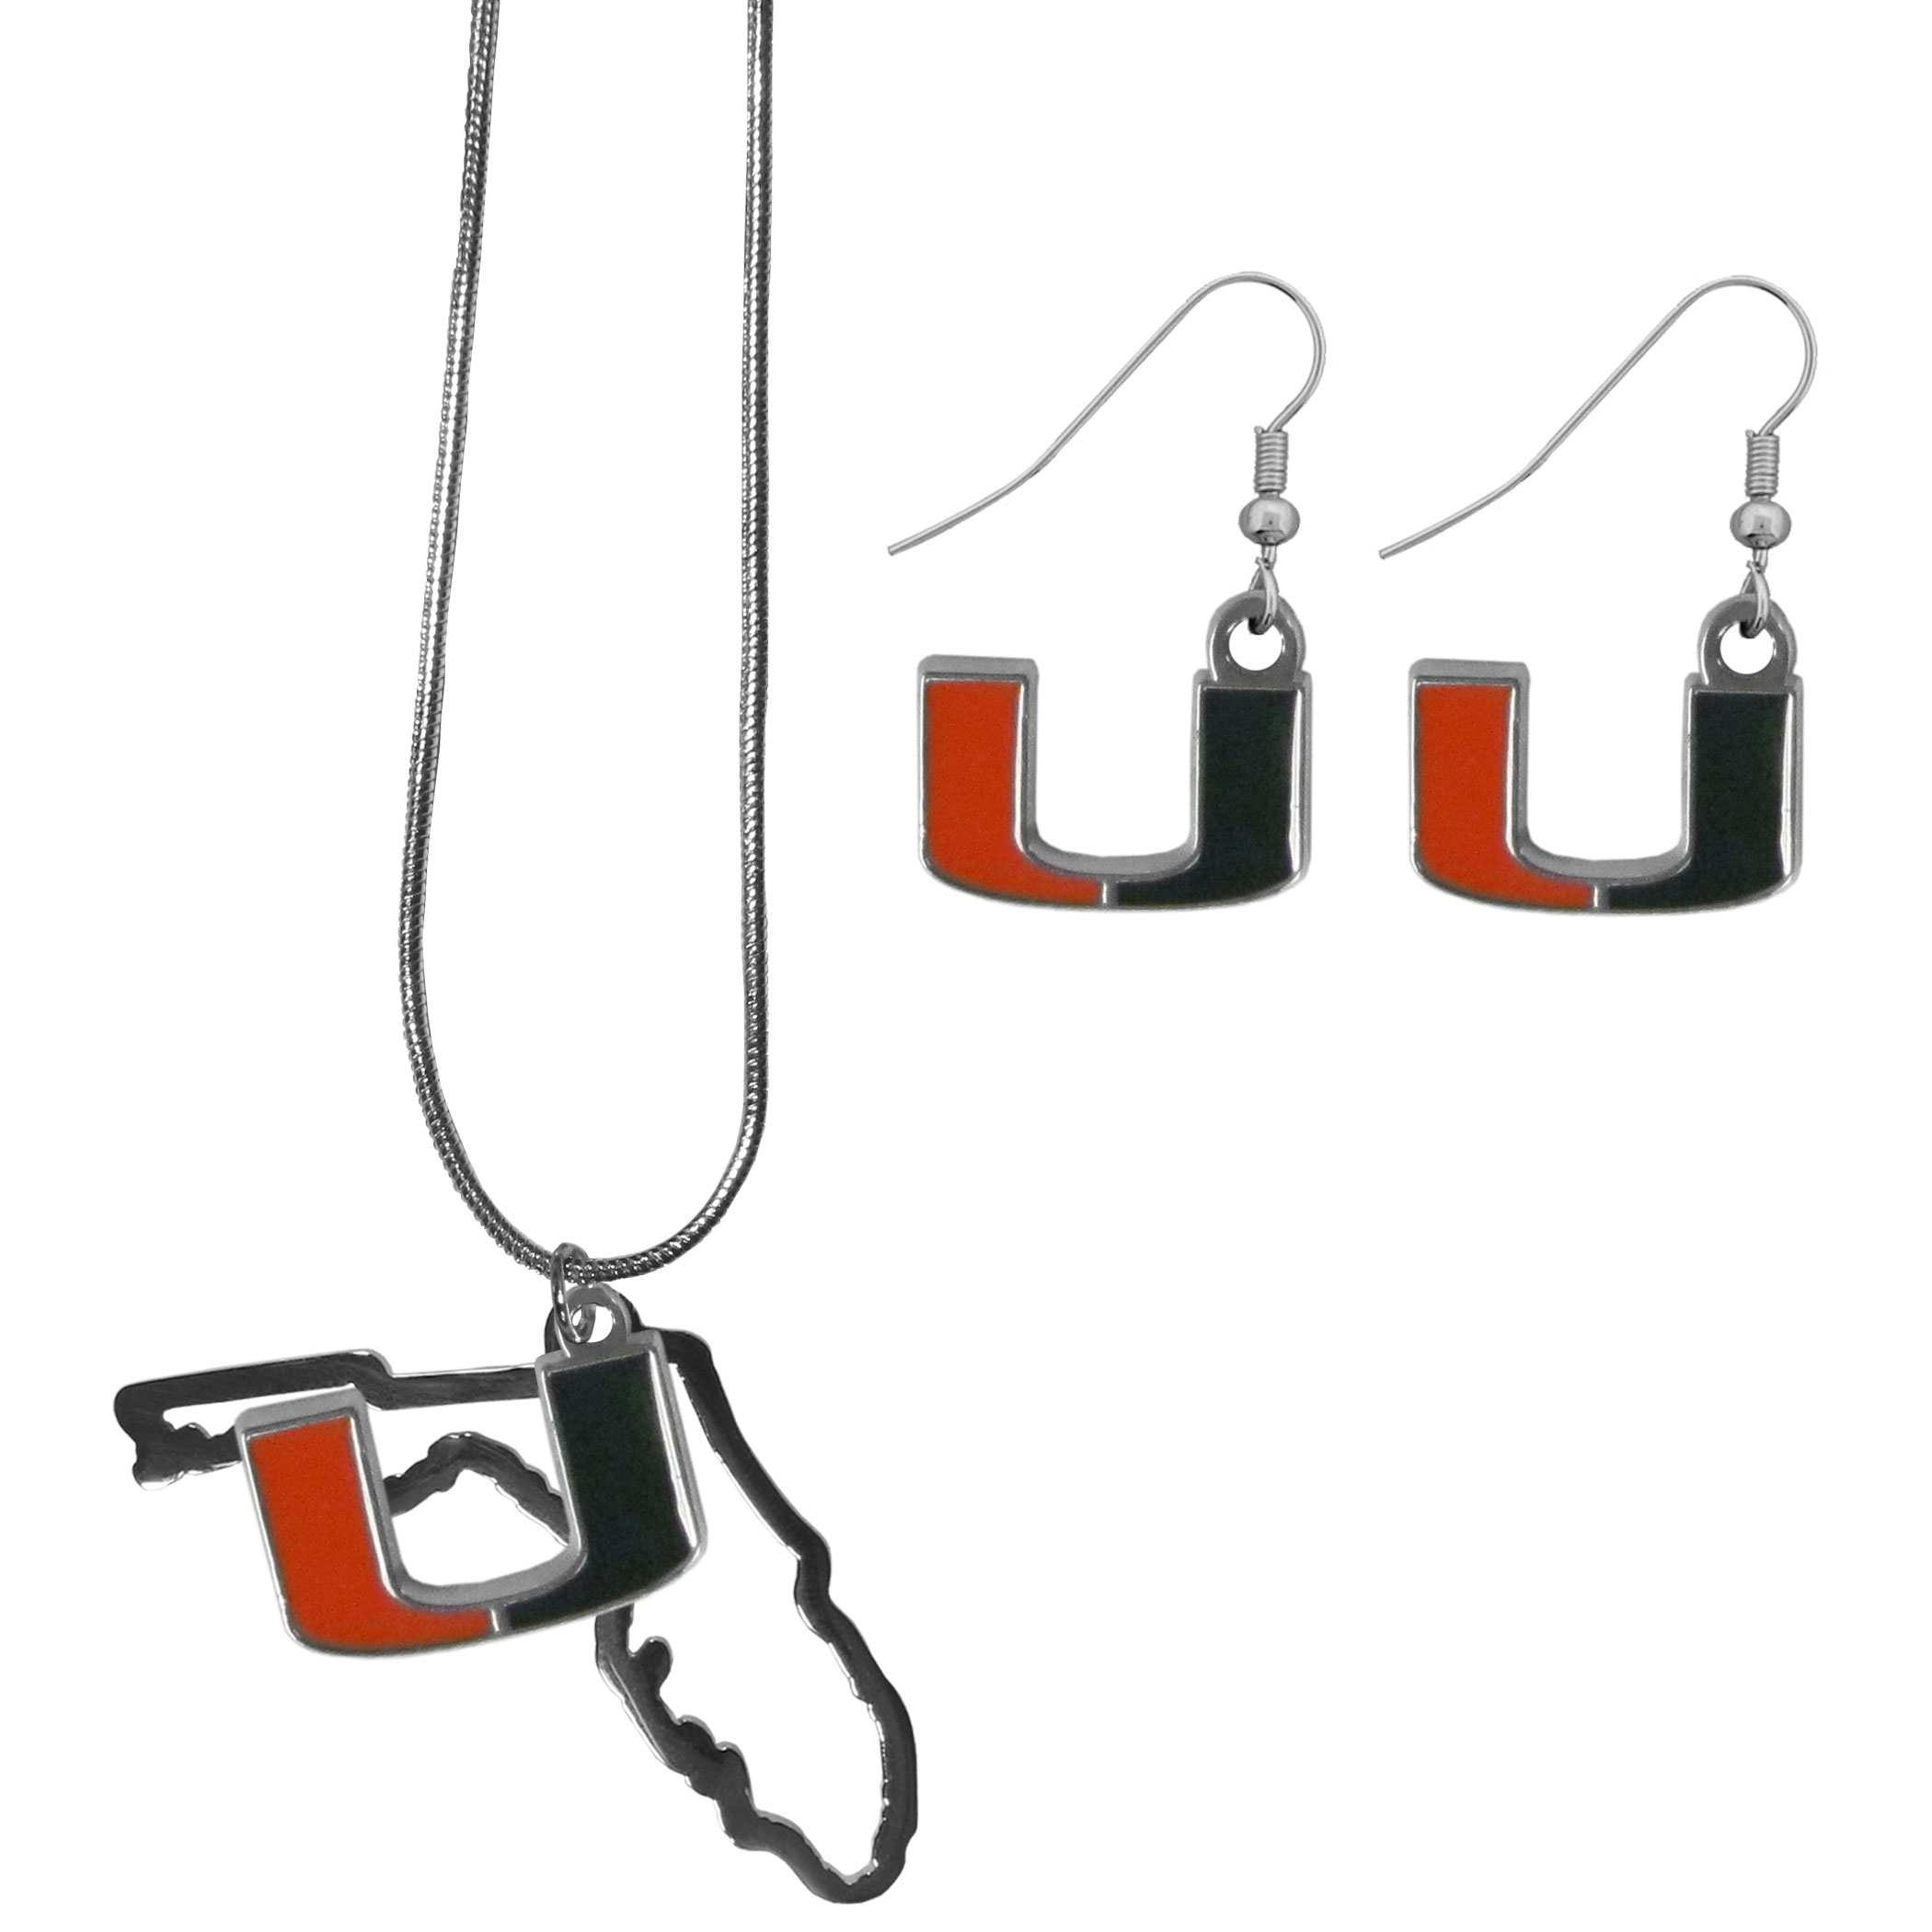 Miami Hurricanes Dangle Earrings and State Necklace Set - Get in on the trend! State themes are a trend that just keeps getting more popular and this jewelry set takes the state style and give it a sporty twist with a Miami Hurricanes necklace that features an Arizona state outline charm paired with a beautiful team charm and matching team charm dangle earrings. The earrings feature hypoallergenic fishhook posts that are nickel free.